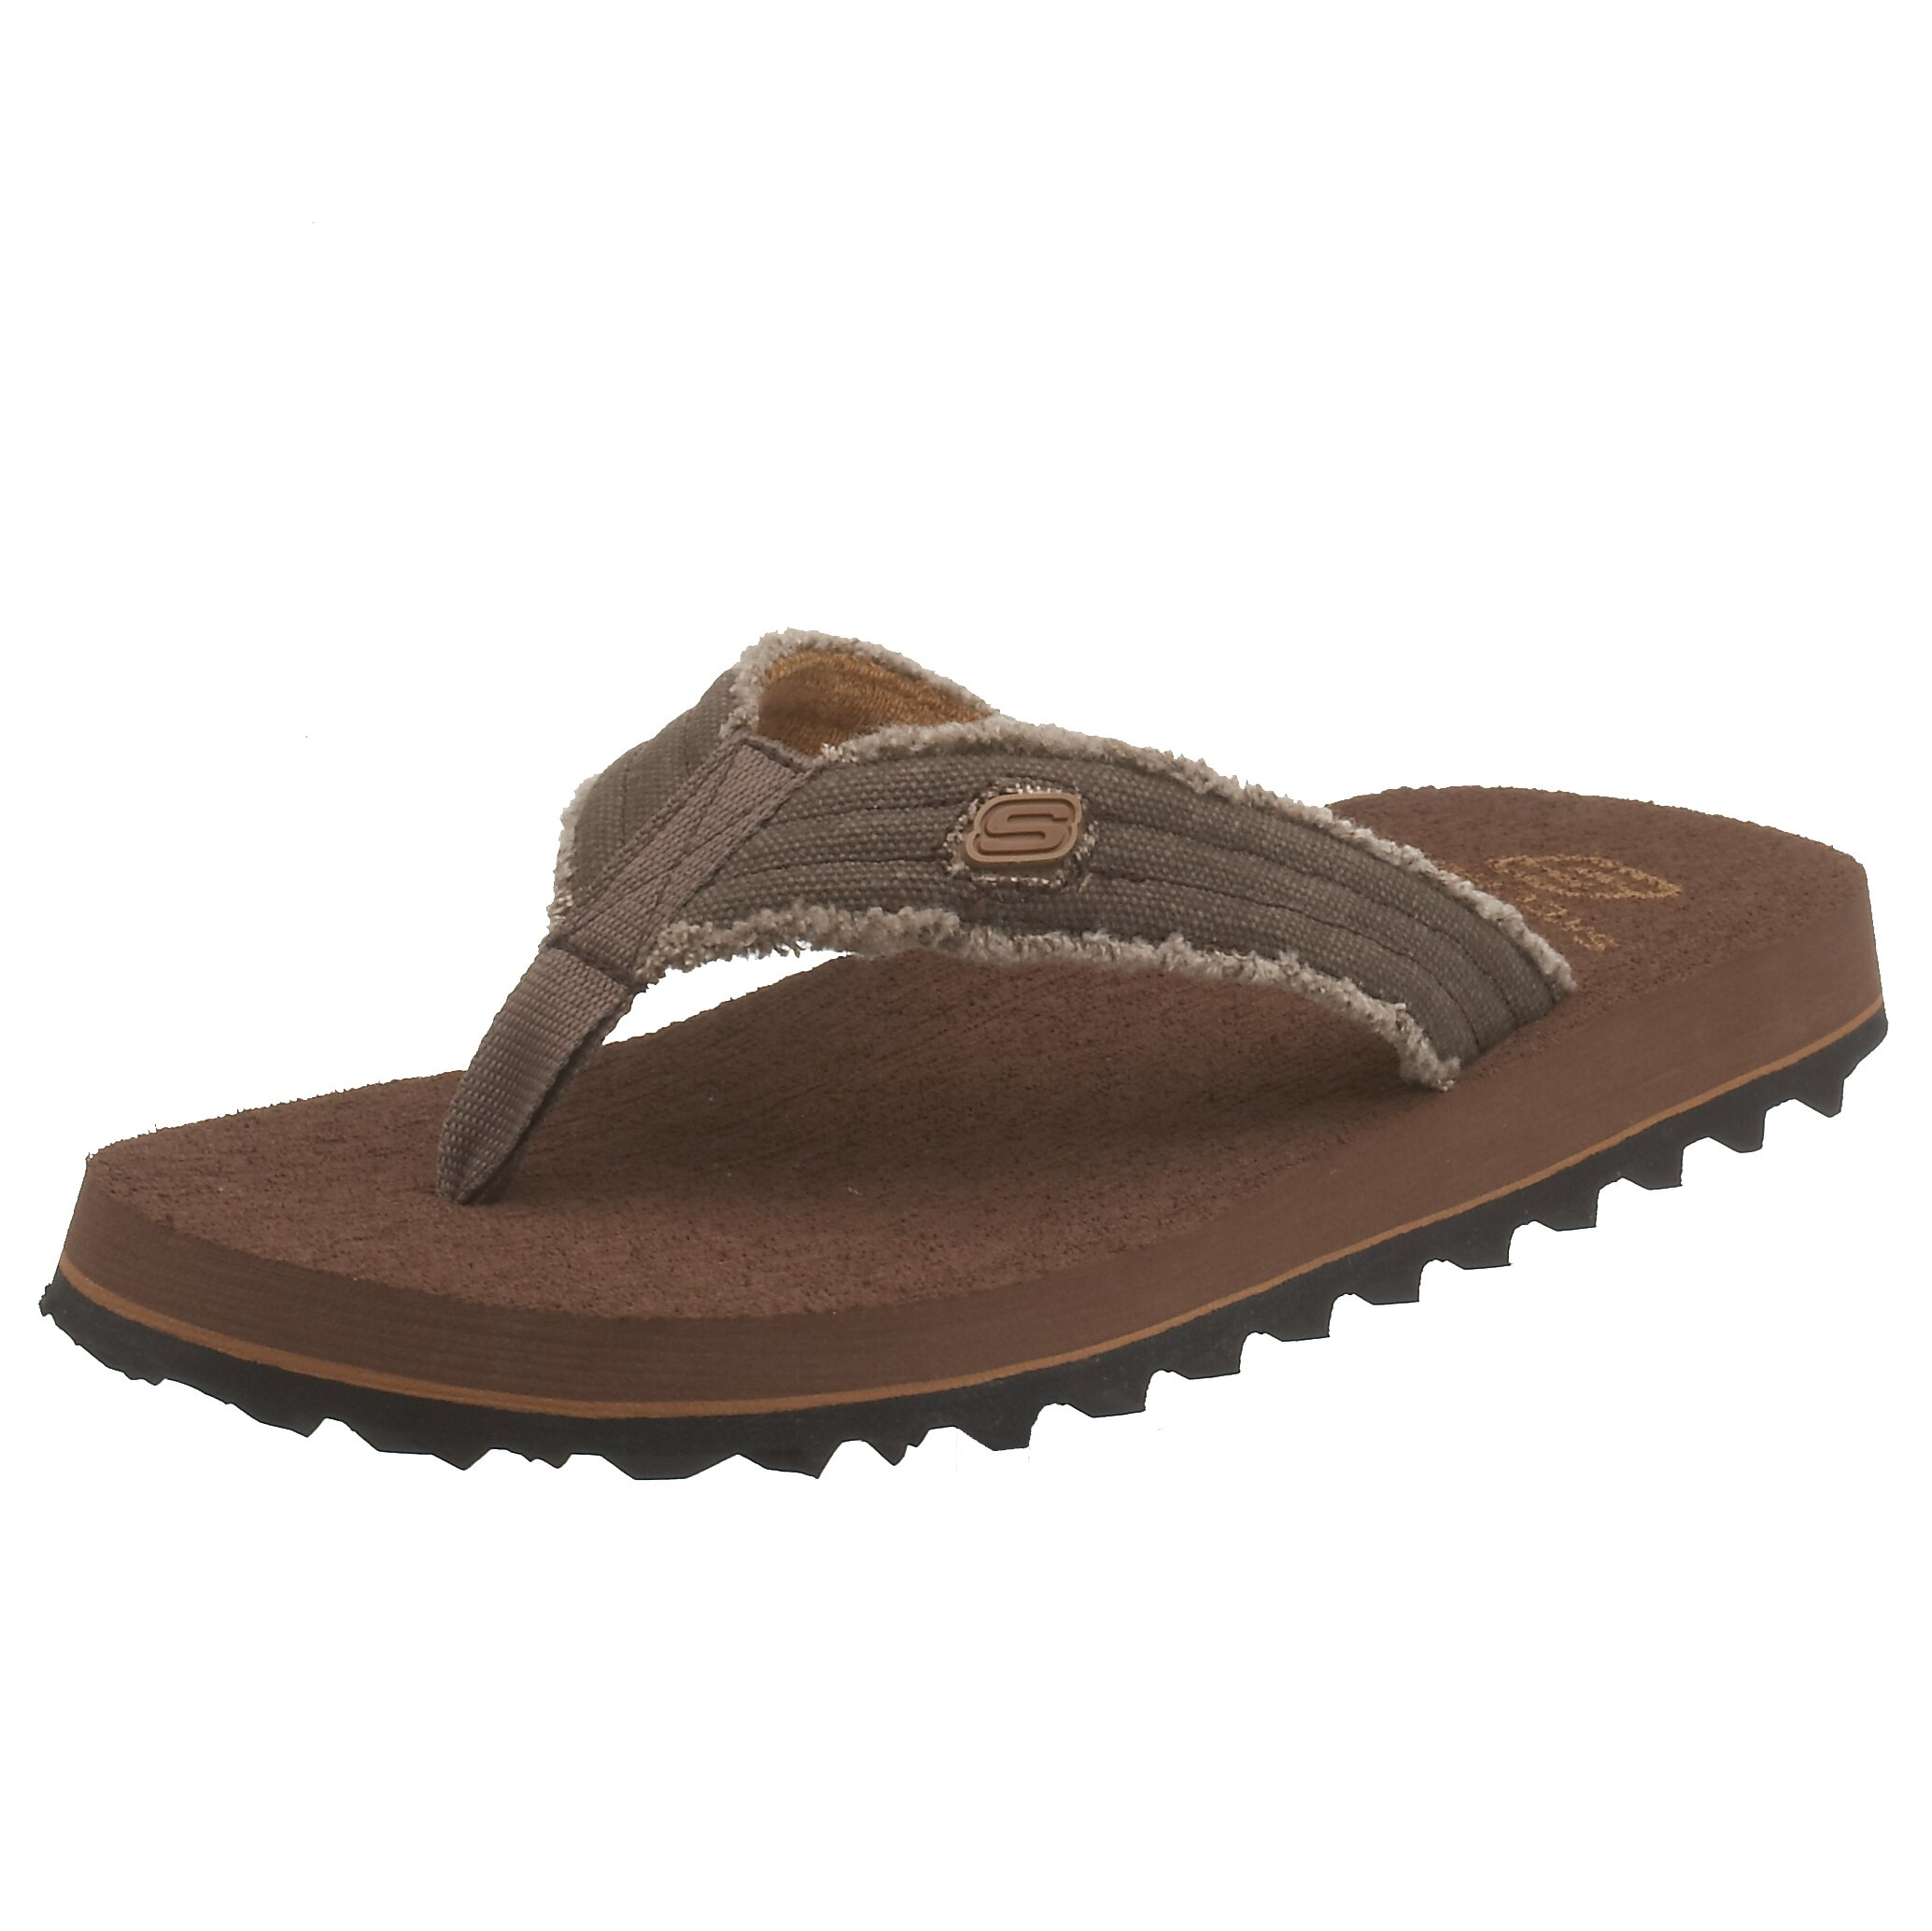 a7c70a9eb684 Best Rated in Men s Sandals   Helpful Customer Reviews - Amazon.com